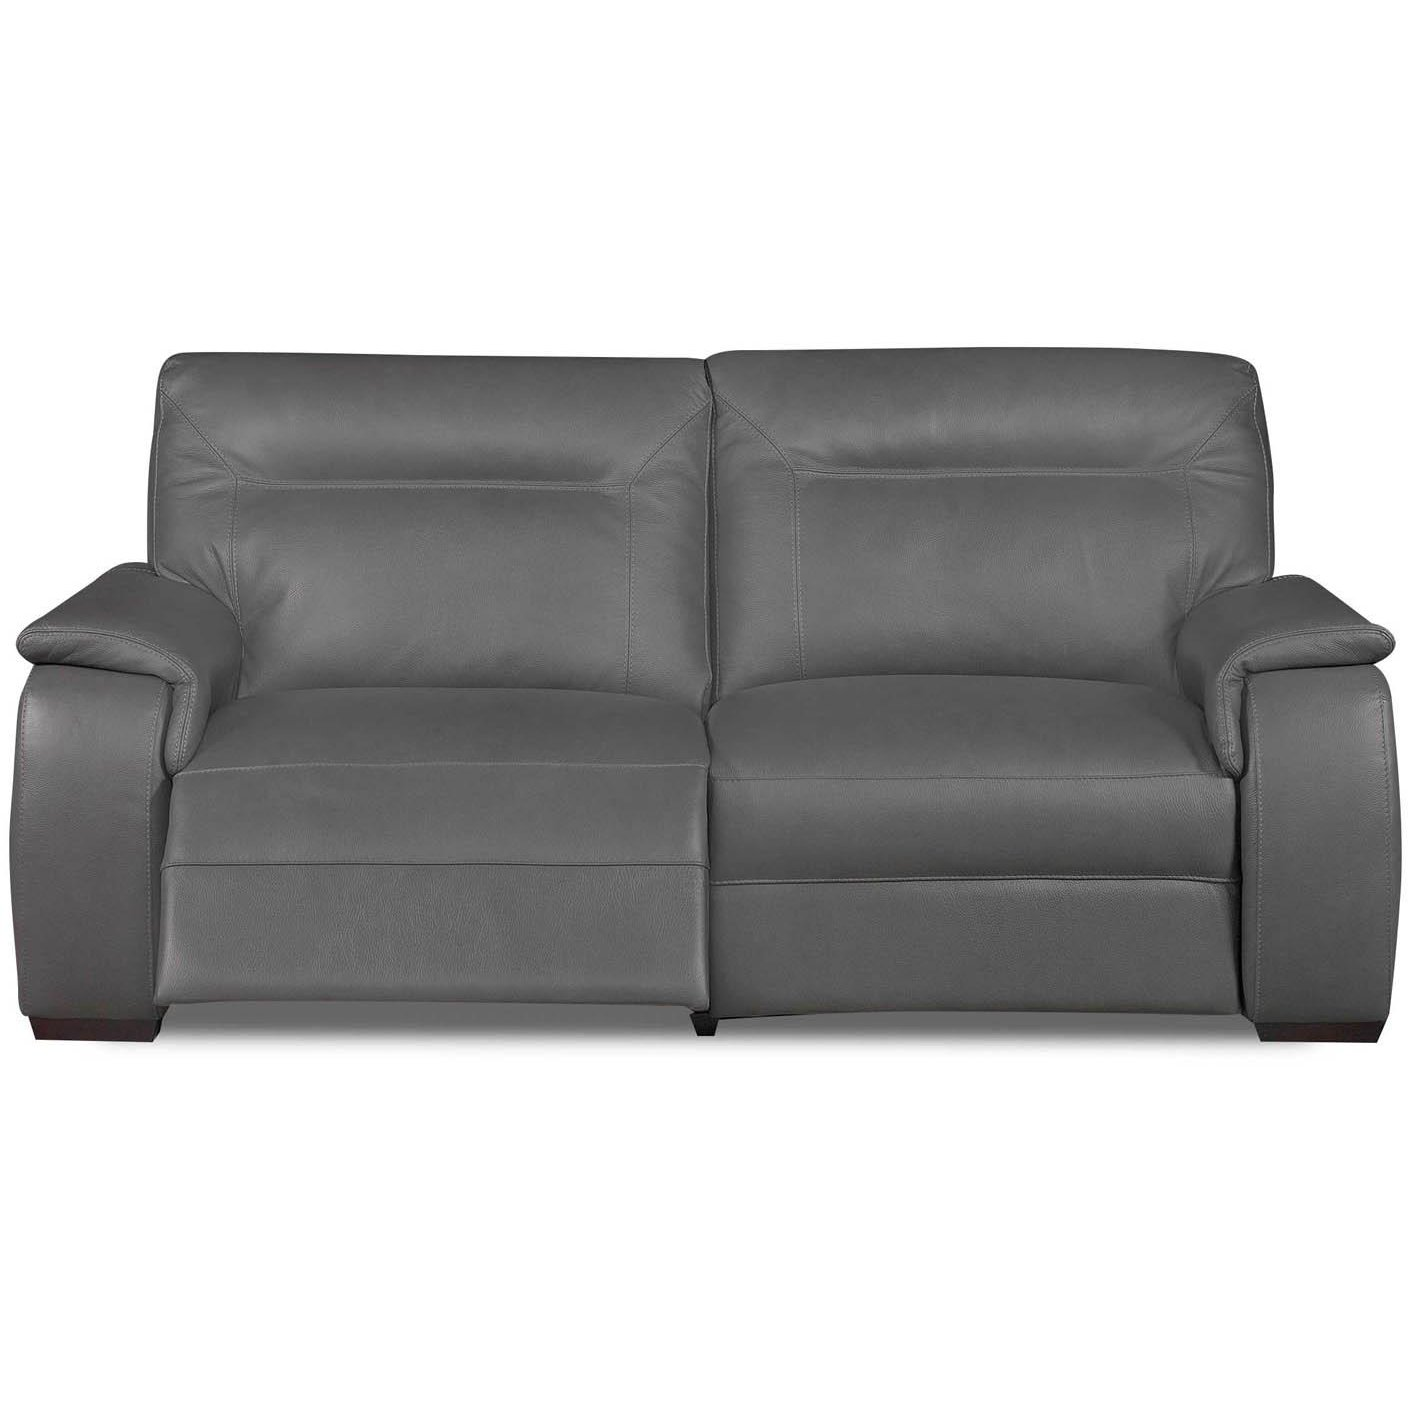 Leather power reclining sofa and loveseat Power reclining sofas and loveseats